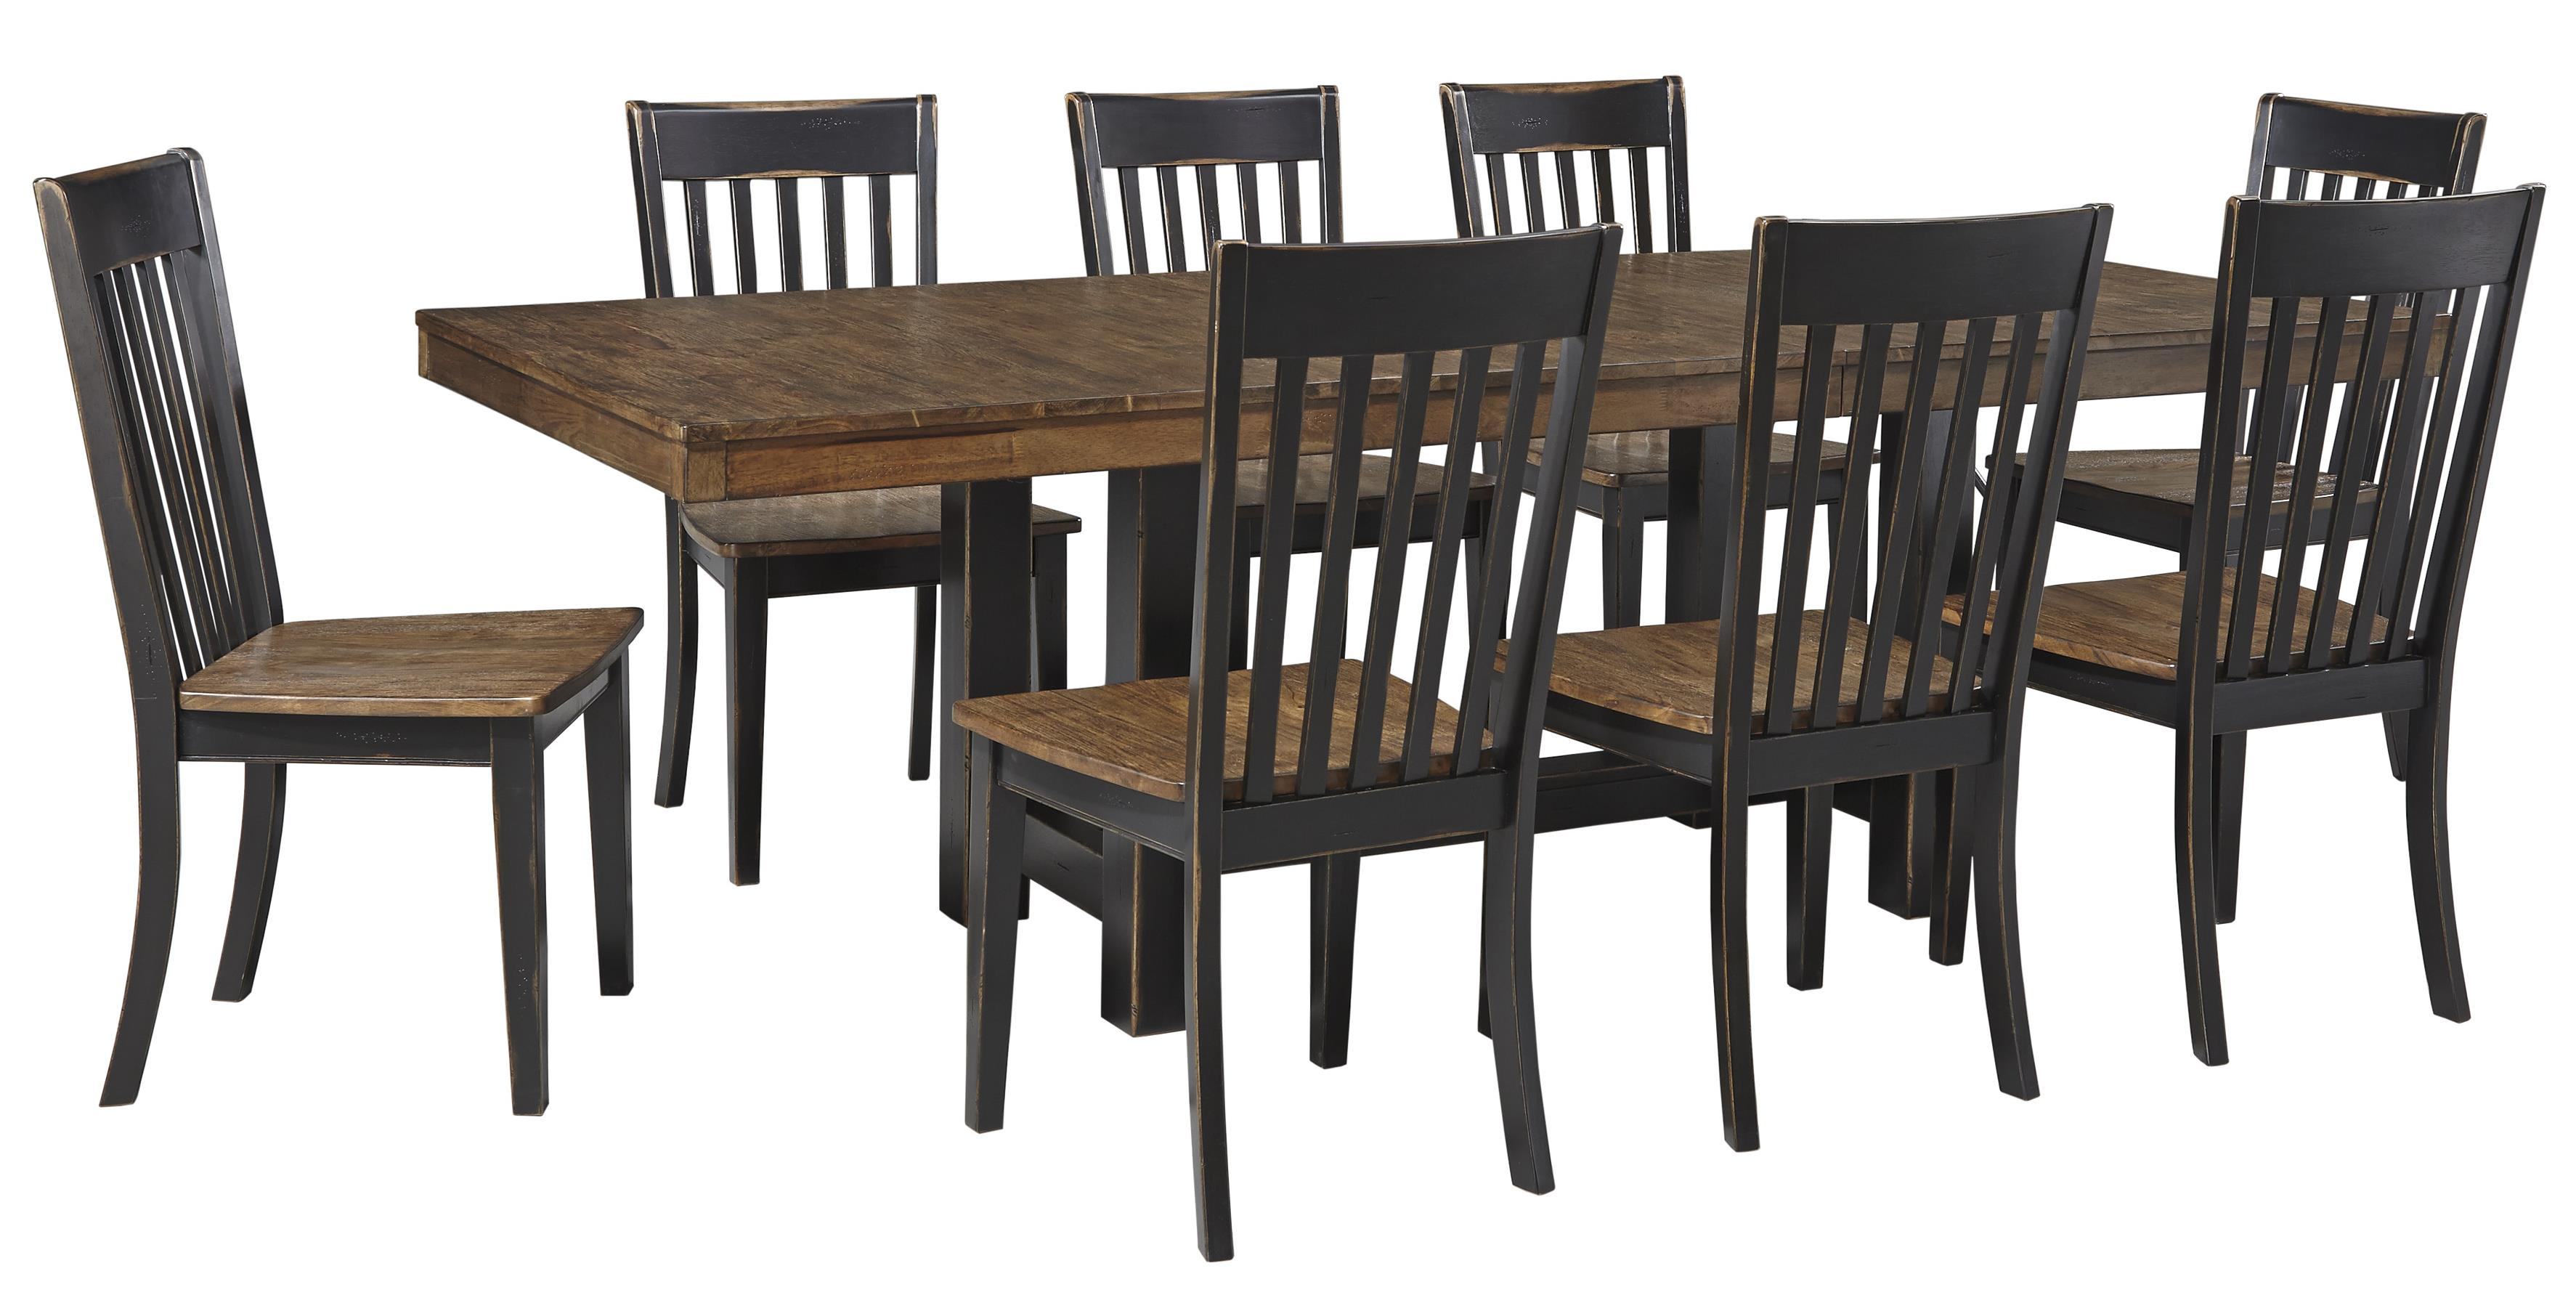 Signature Design by Ashley Emerfield 9 Piece Two-Tone Rectangular Dining Set - Item Number: D563-35+8x-01